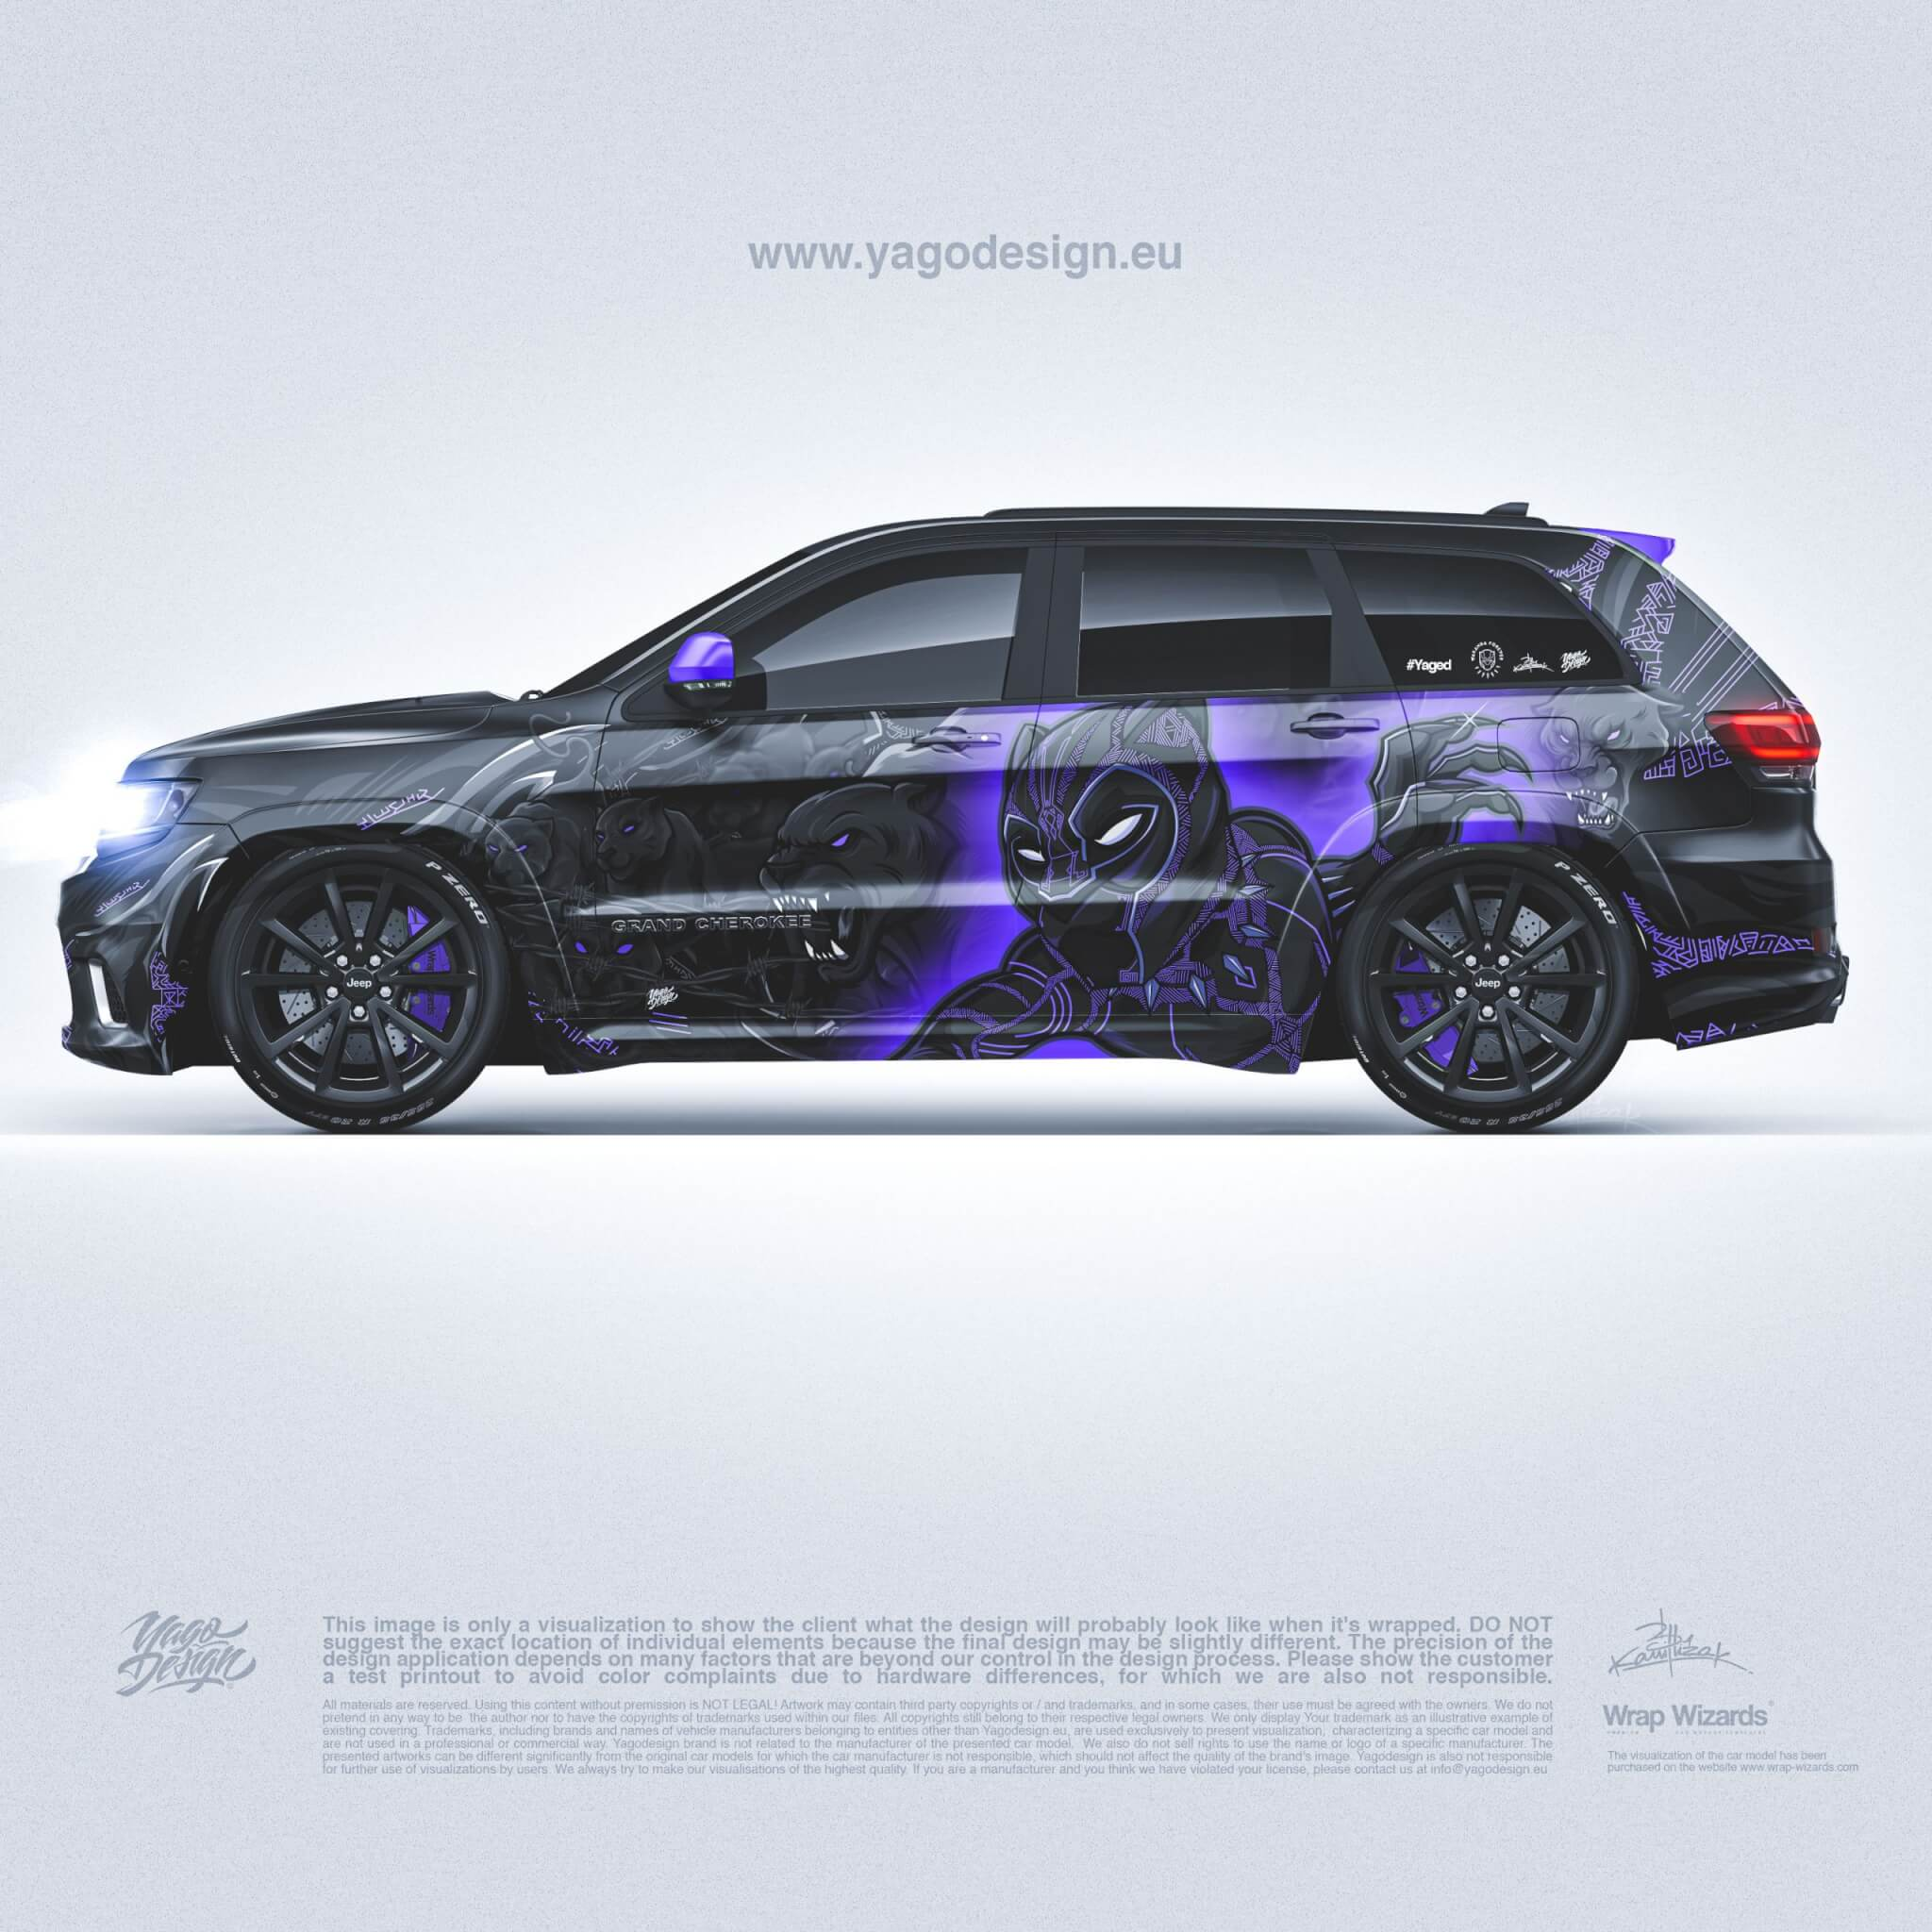 BLACK-PANTHER-JEEP-GRAND-CHEEROKE-BY-YAGODESIGN